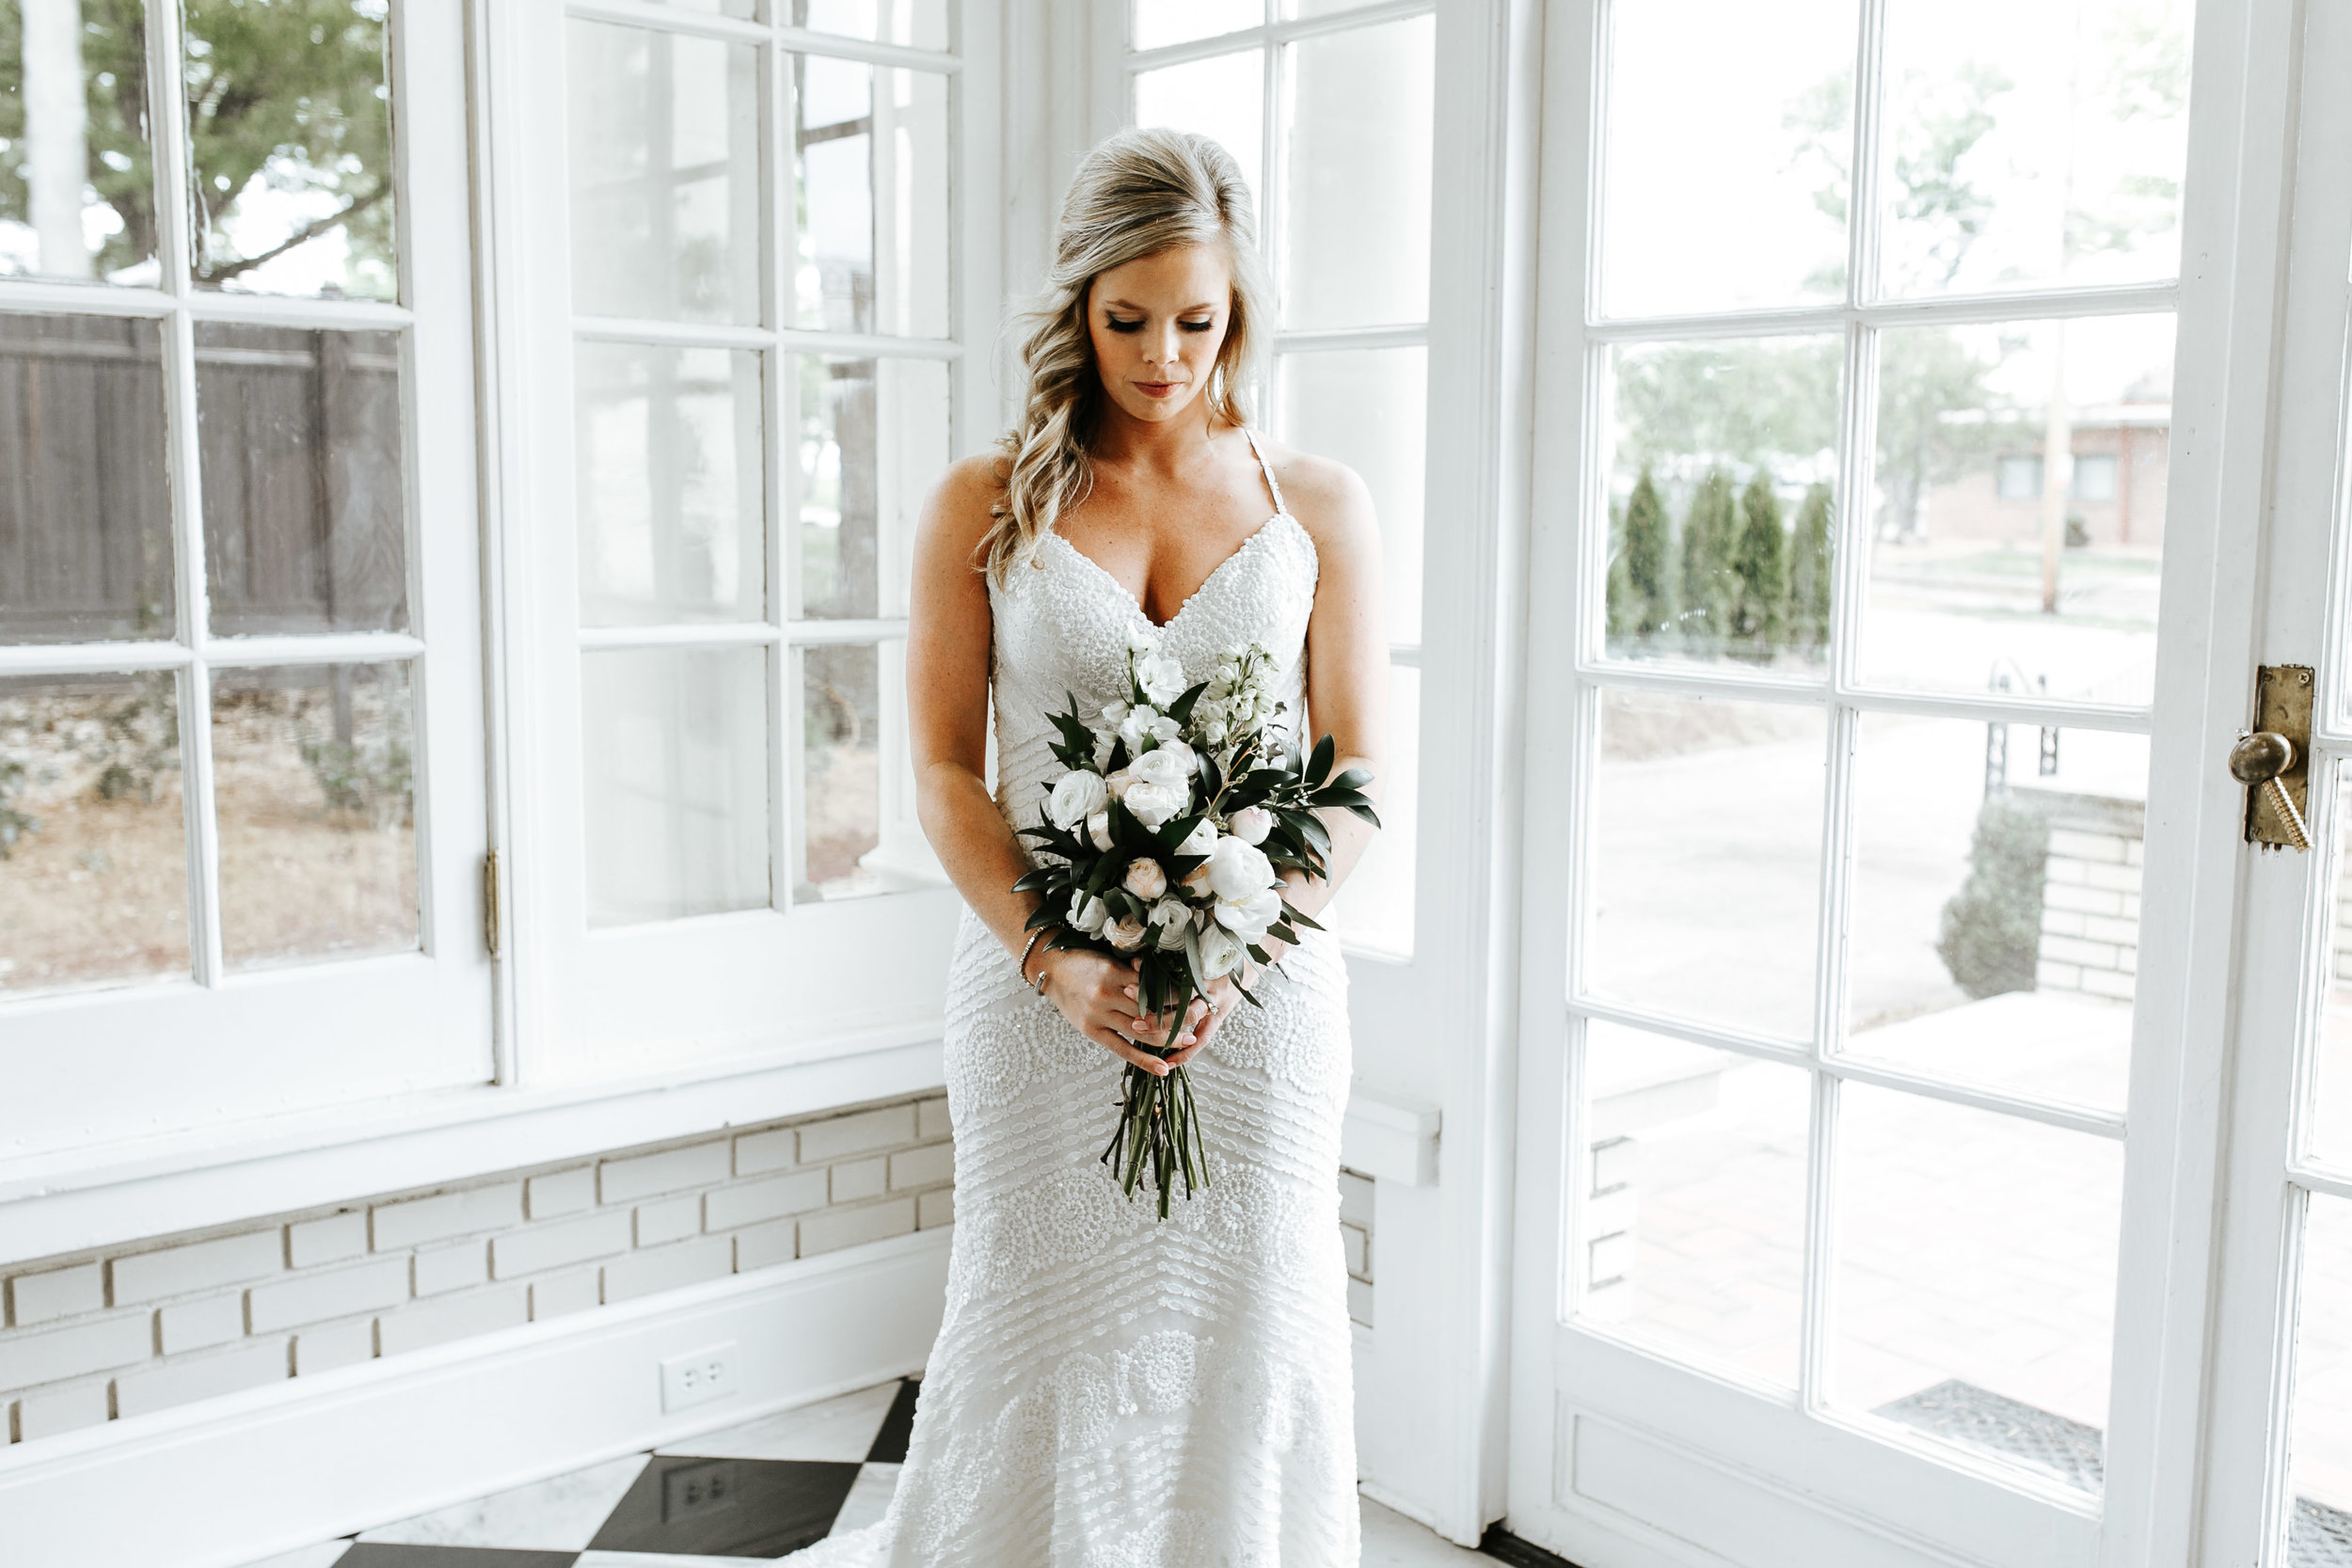 michellebrandonwedding-17.jpg